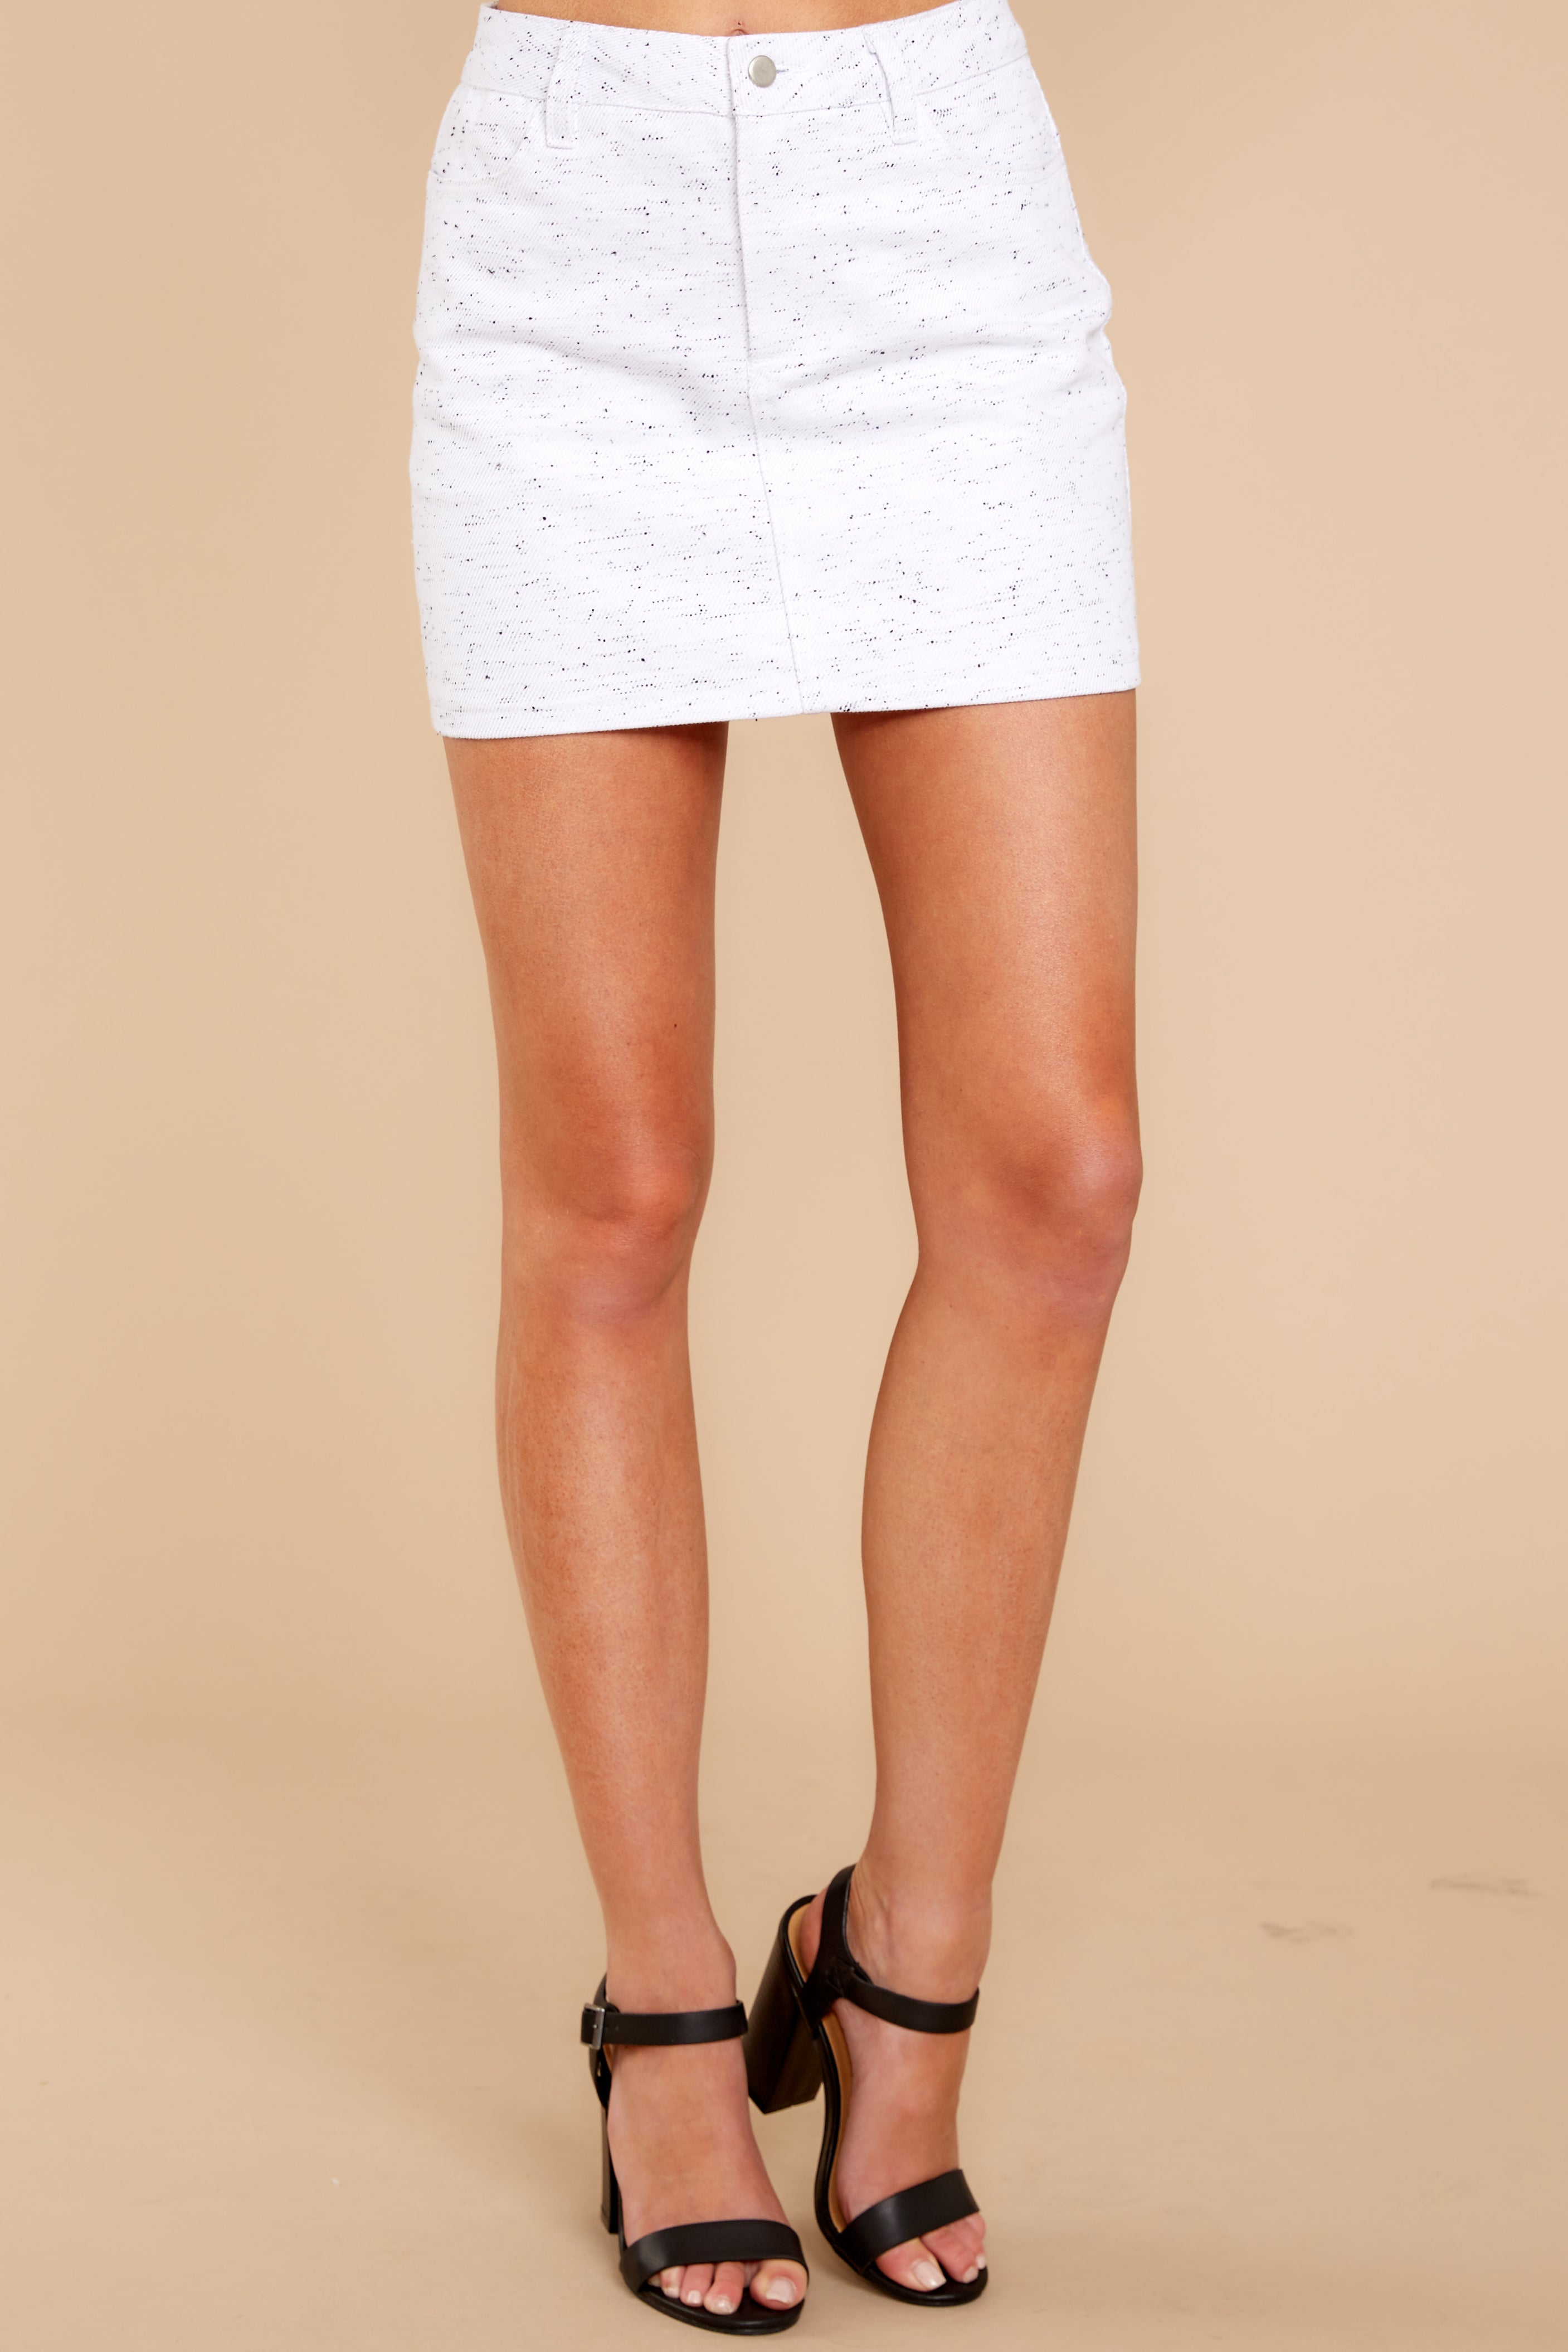 2 In Search Of You White Print Skirt at reddressboutique.com